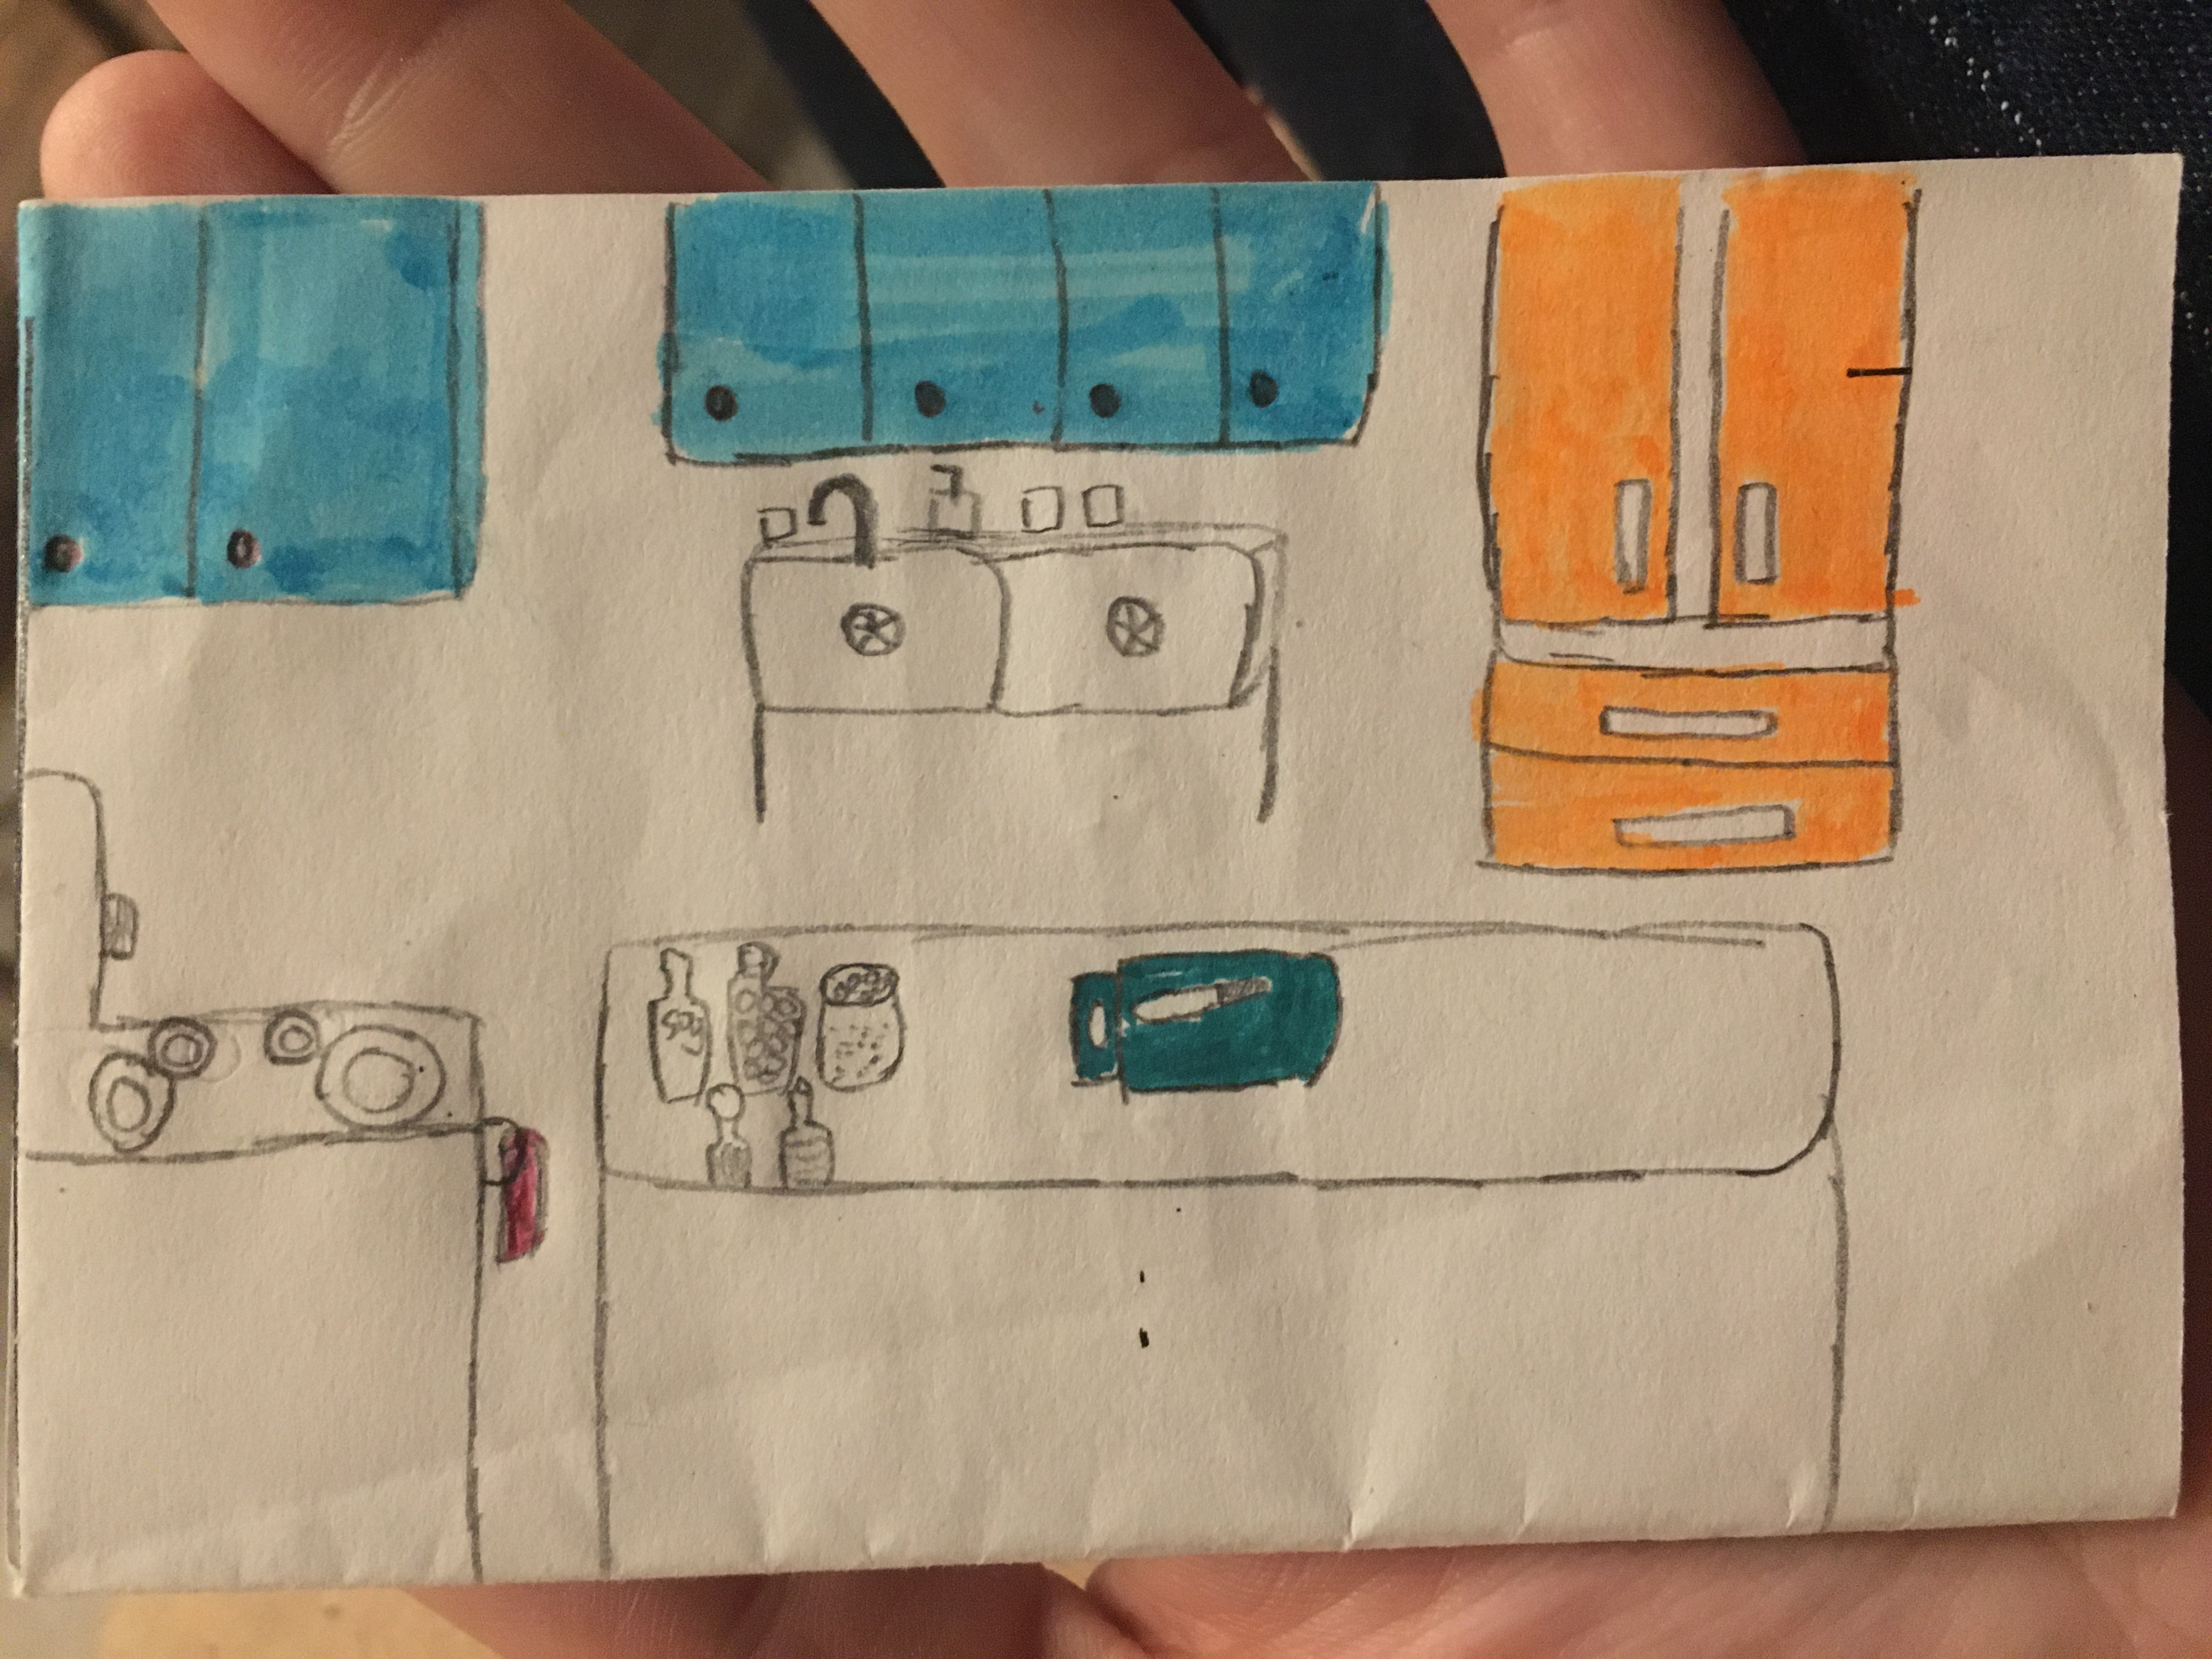 Pencil illustration of a kitchen with blue and orange cupboards, a stove, a sink, and an island with spices and a knife on it.